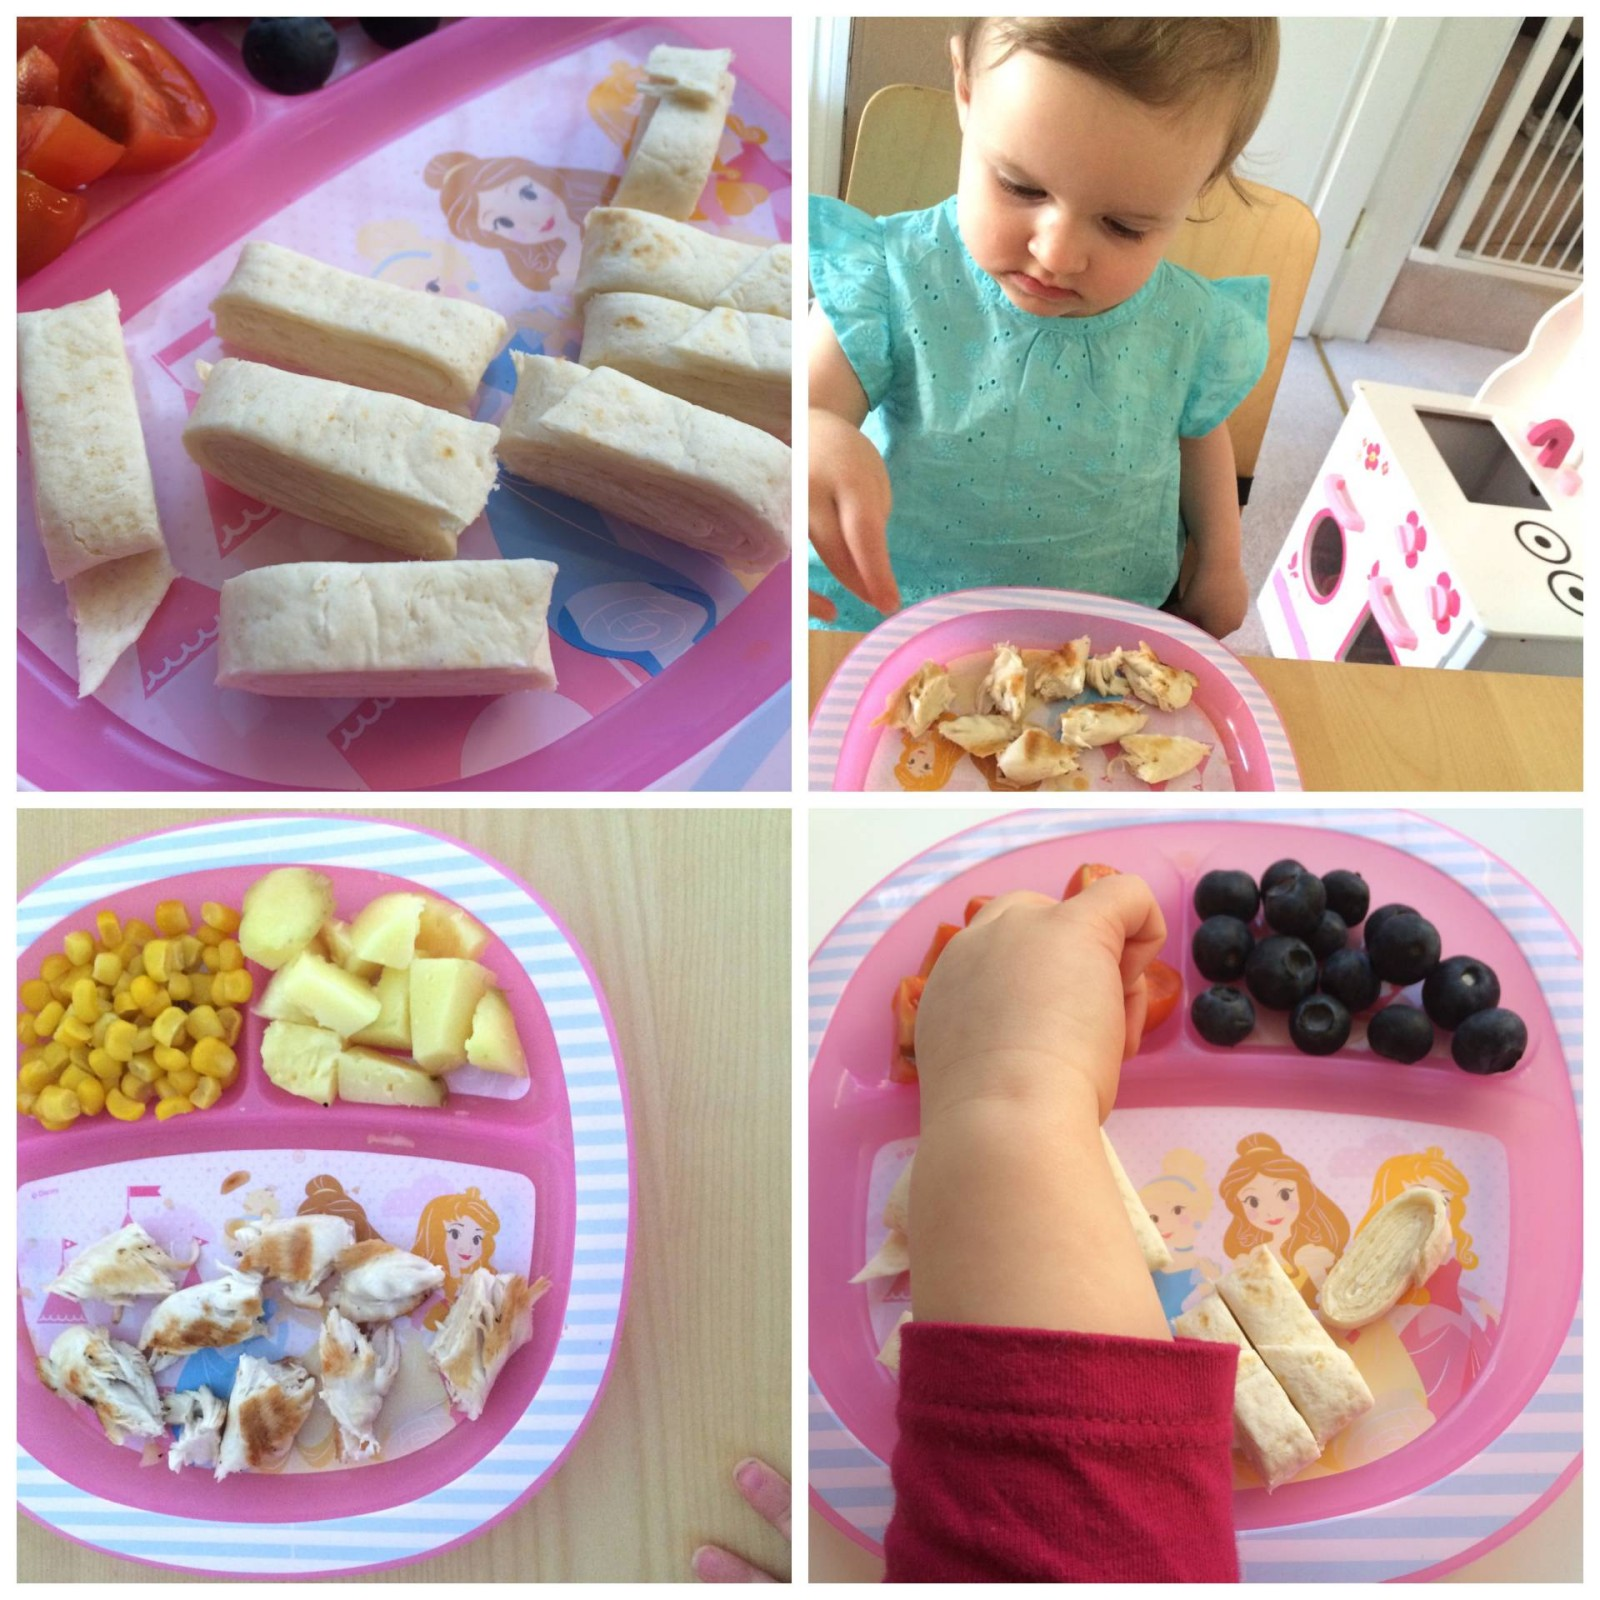 a day of allergy friendly meal ideas for toddler or baby BLW